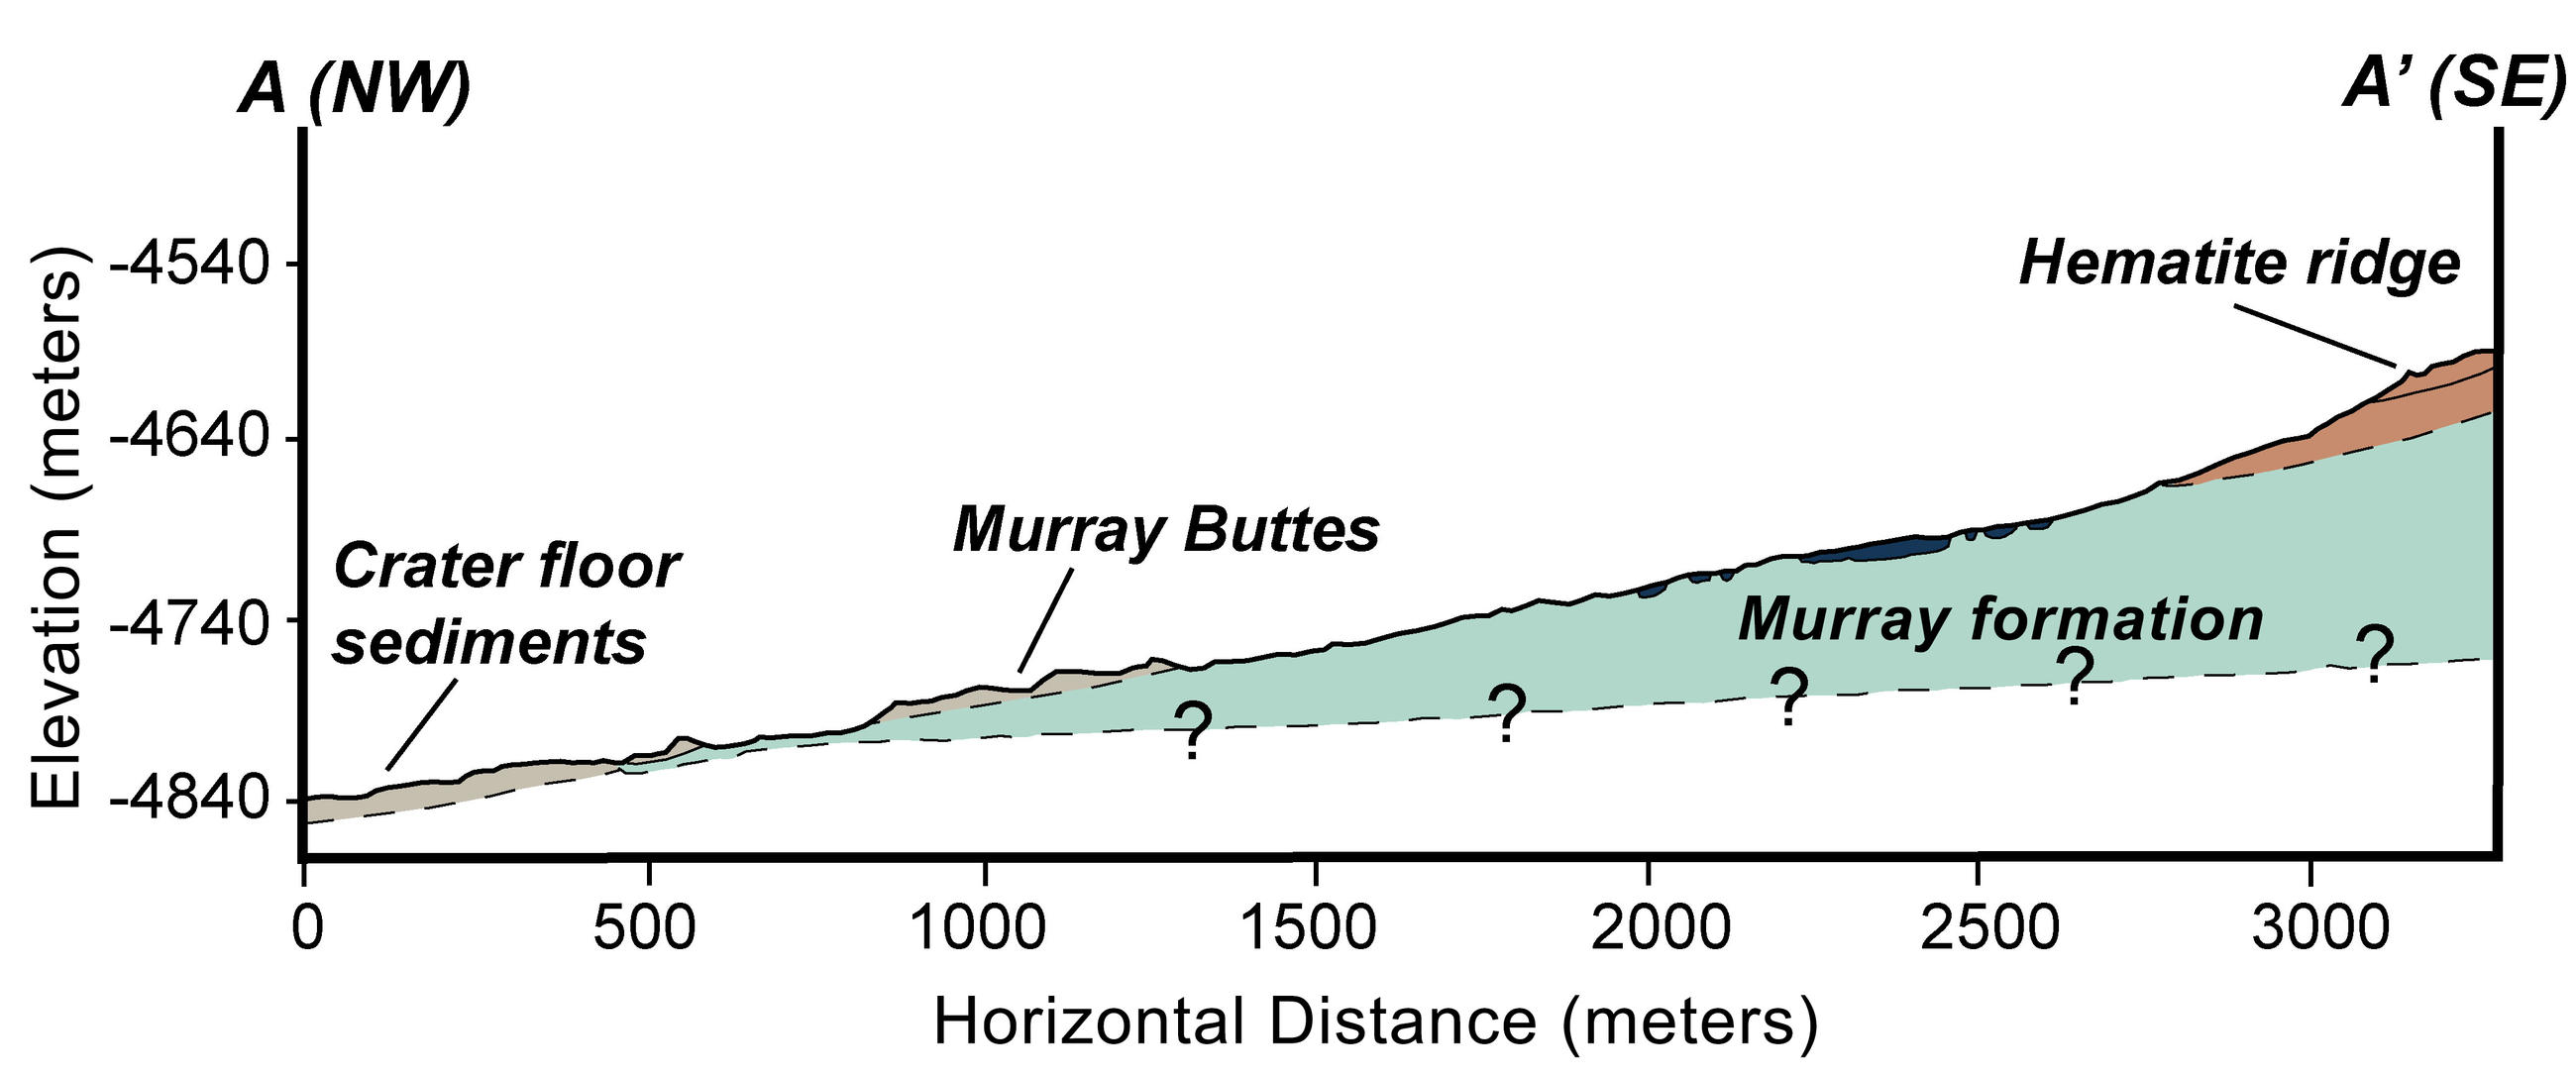 This graphic shows the geologic cross-section through lower Mount Sharp on Mars.  The crater floor is in gray.  The Murray Formation in green and the Hematite Ridge is in orange.